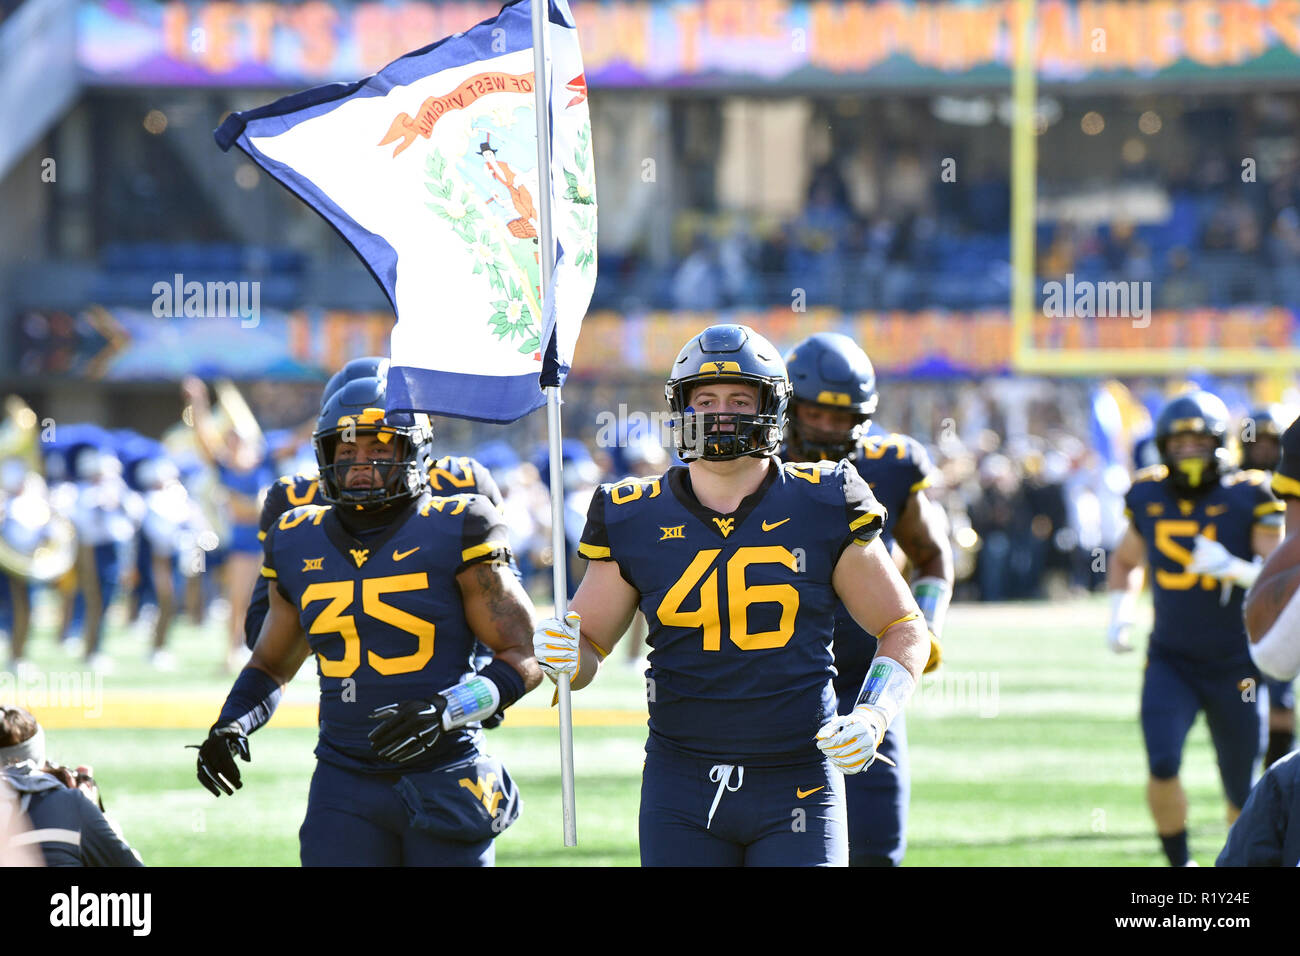 Morgantown, West Virginia, USA. 10th Nov, 2018. West Virginia Mountaineers defensive lineman REESE DONAHUE (46) carries the state flag onto the field prior to the Big 12 football game played at Mountaineer Field in Morgantown, WV. #9 WVU beat TCU 47-10 Credit: Ken Inness/ZUMA Wire/Alamy Live News - Stock Image